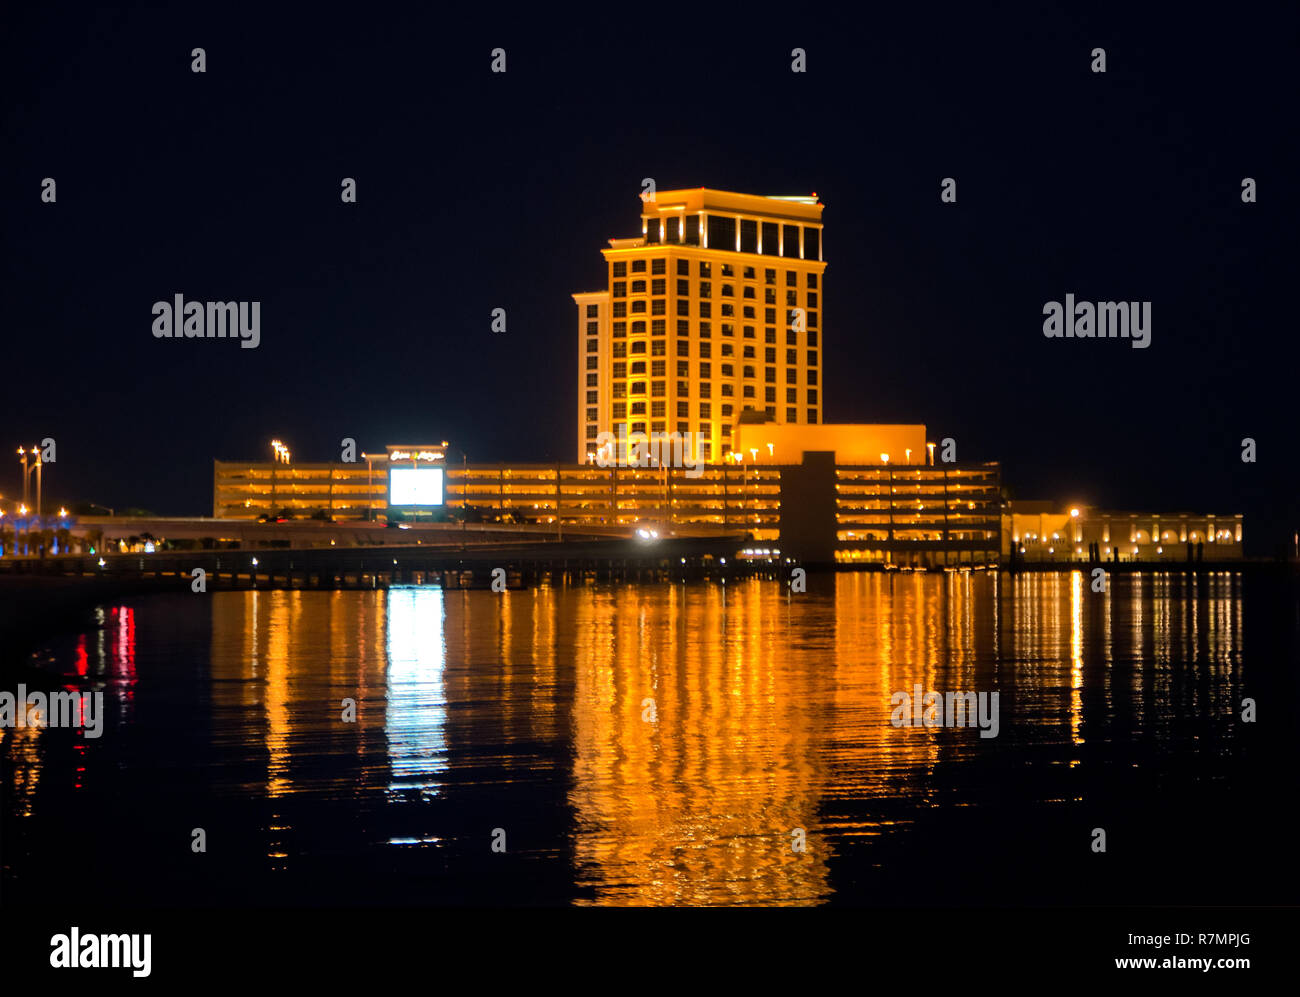 The Beau Rivage Casino Is Lit At Night And Reflected In The Water